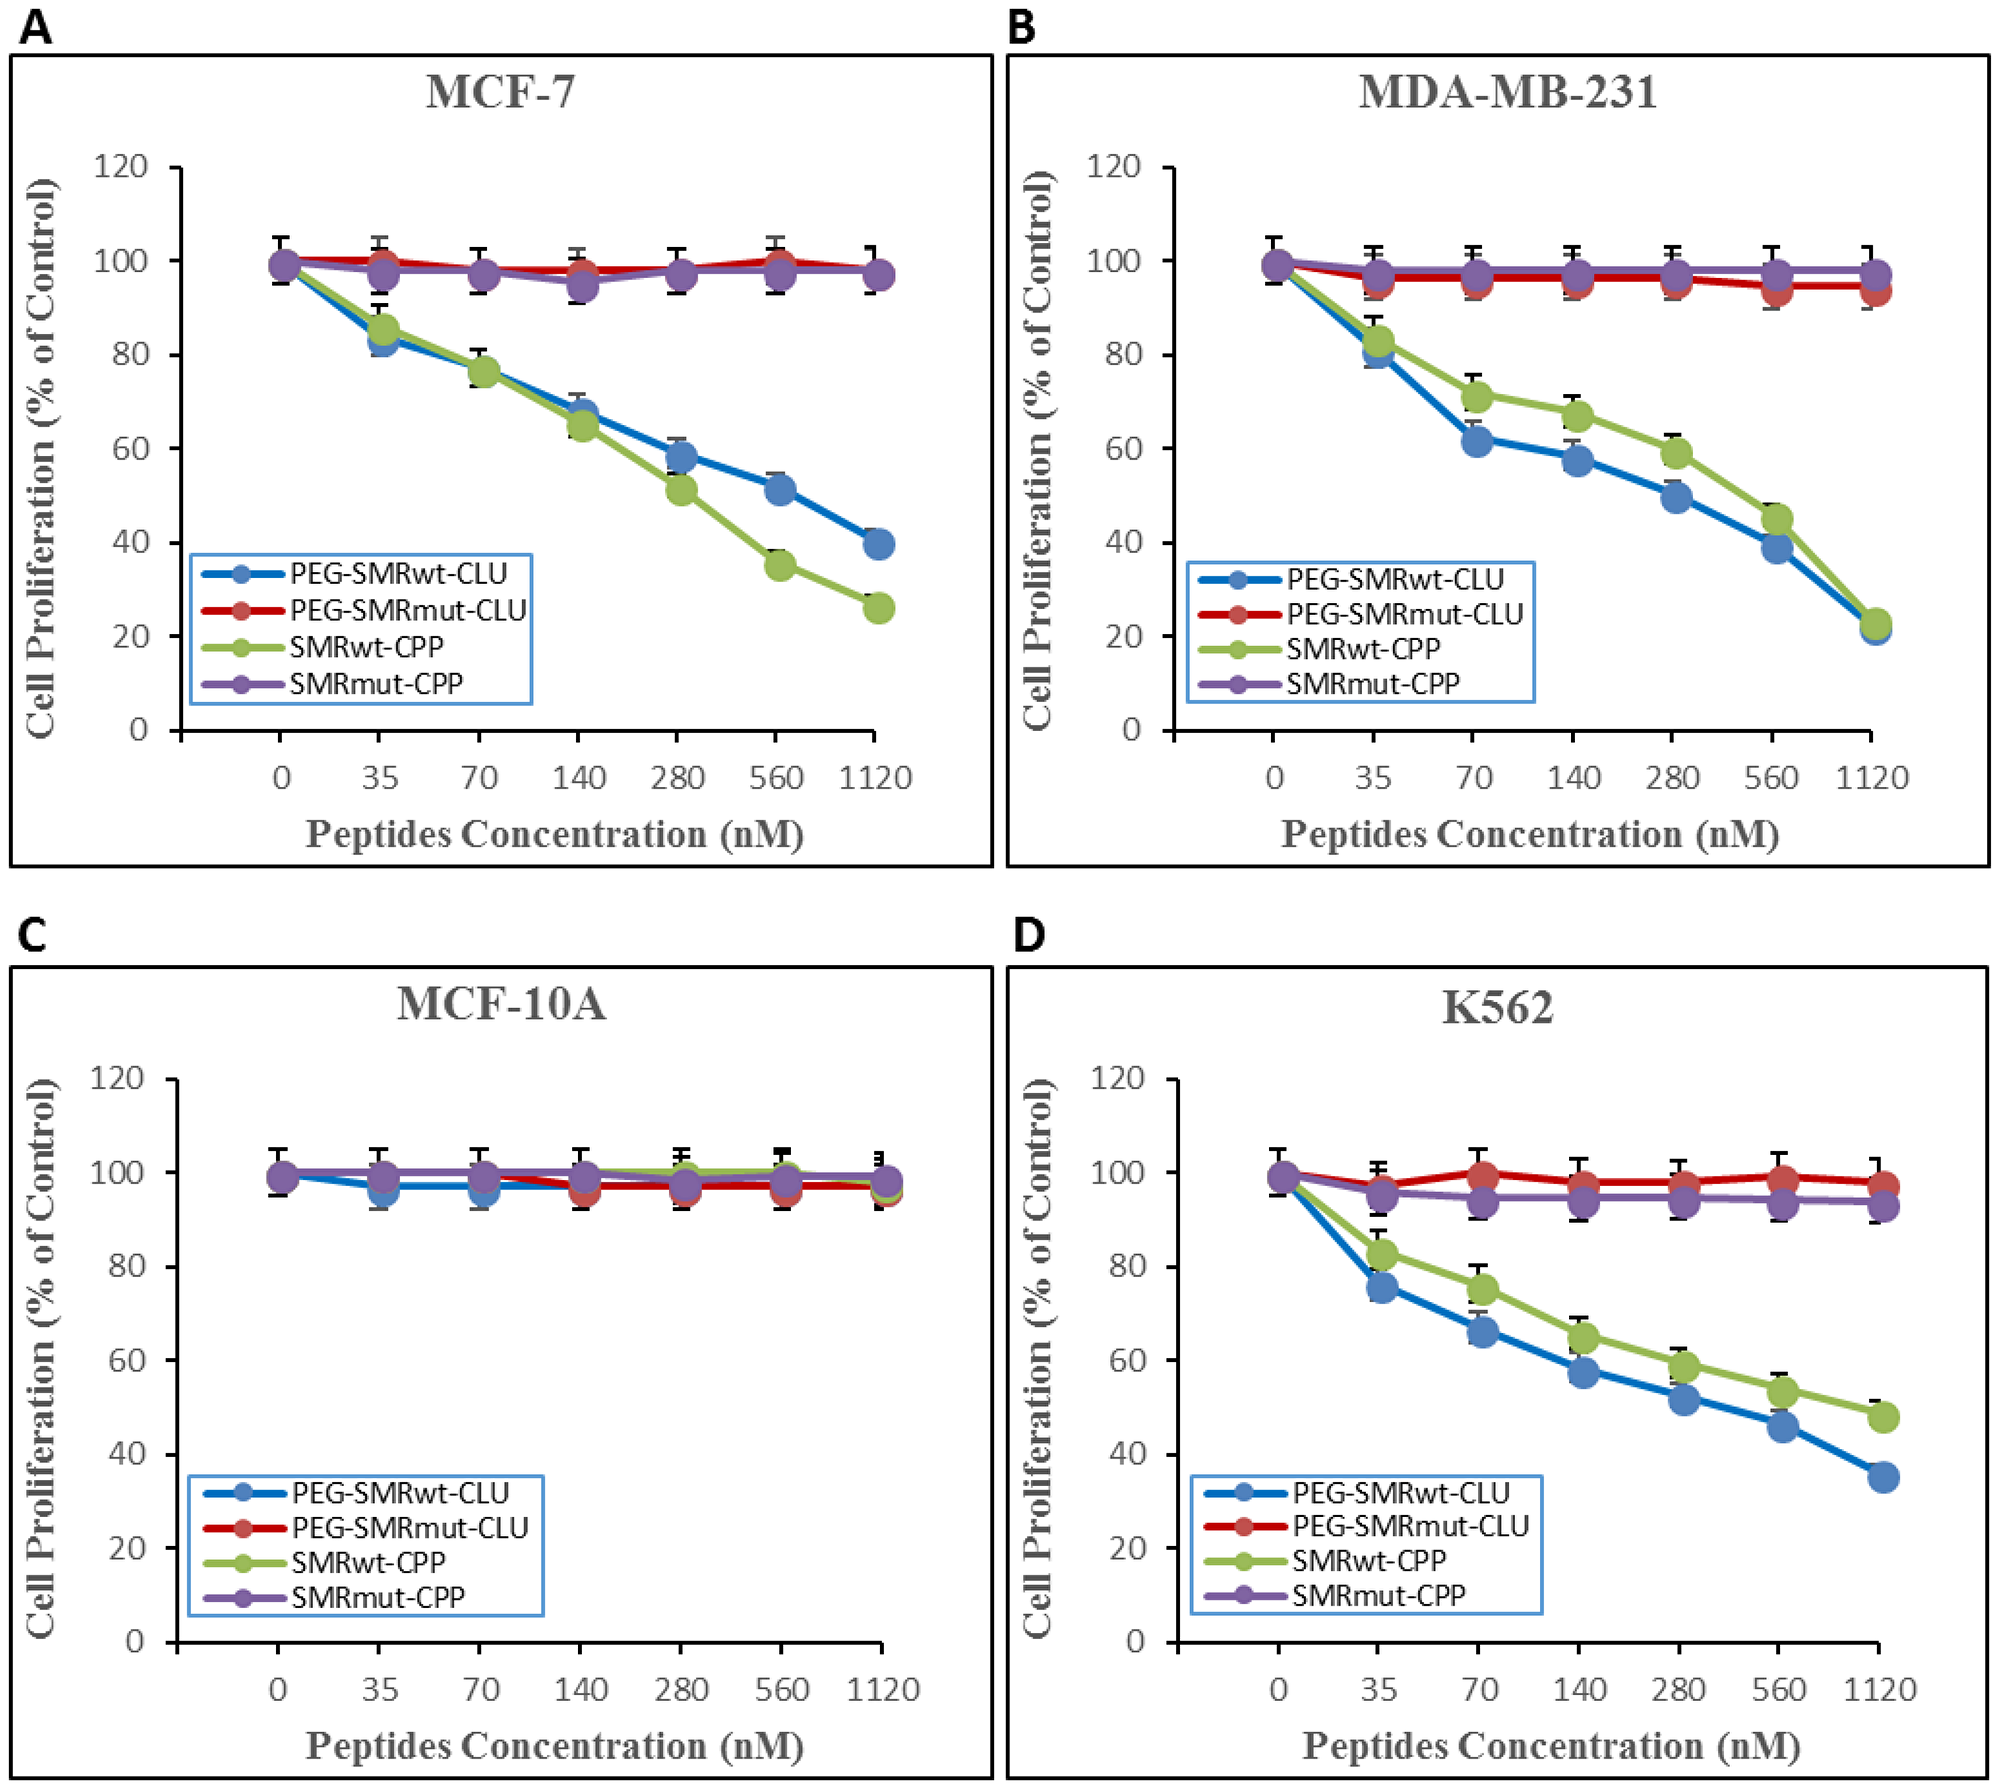 SMRwt-CPP peptides affect proliferation of MCF-7 and MDA-MB-231 breast cancer cells and K562 leukemia cells, but not non-tumorigenic MCF-10A cells.